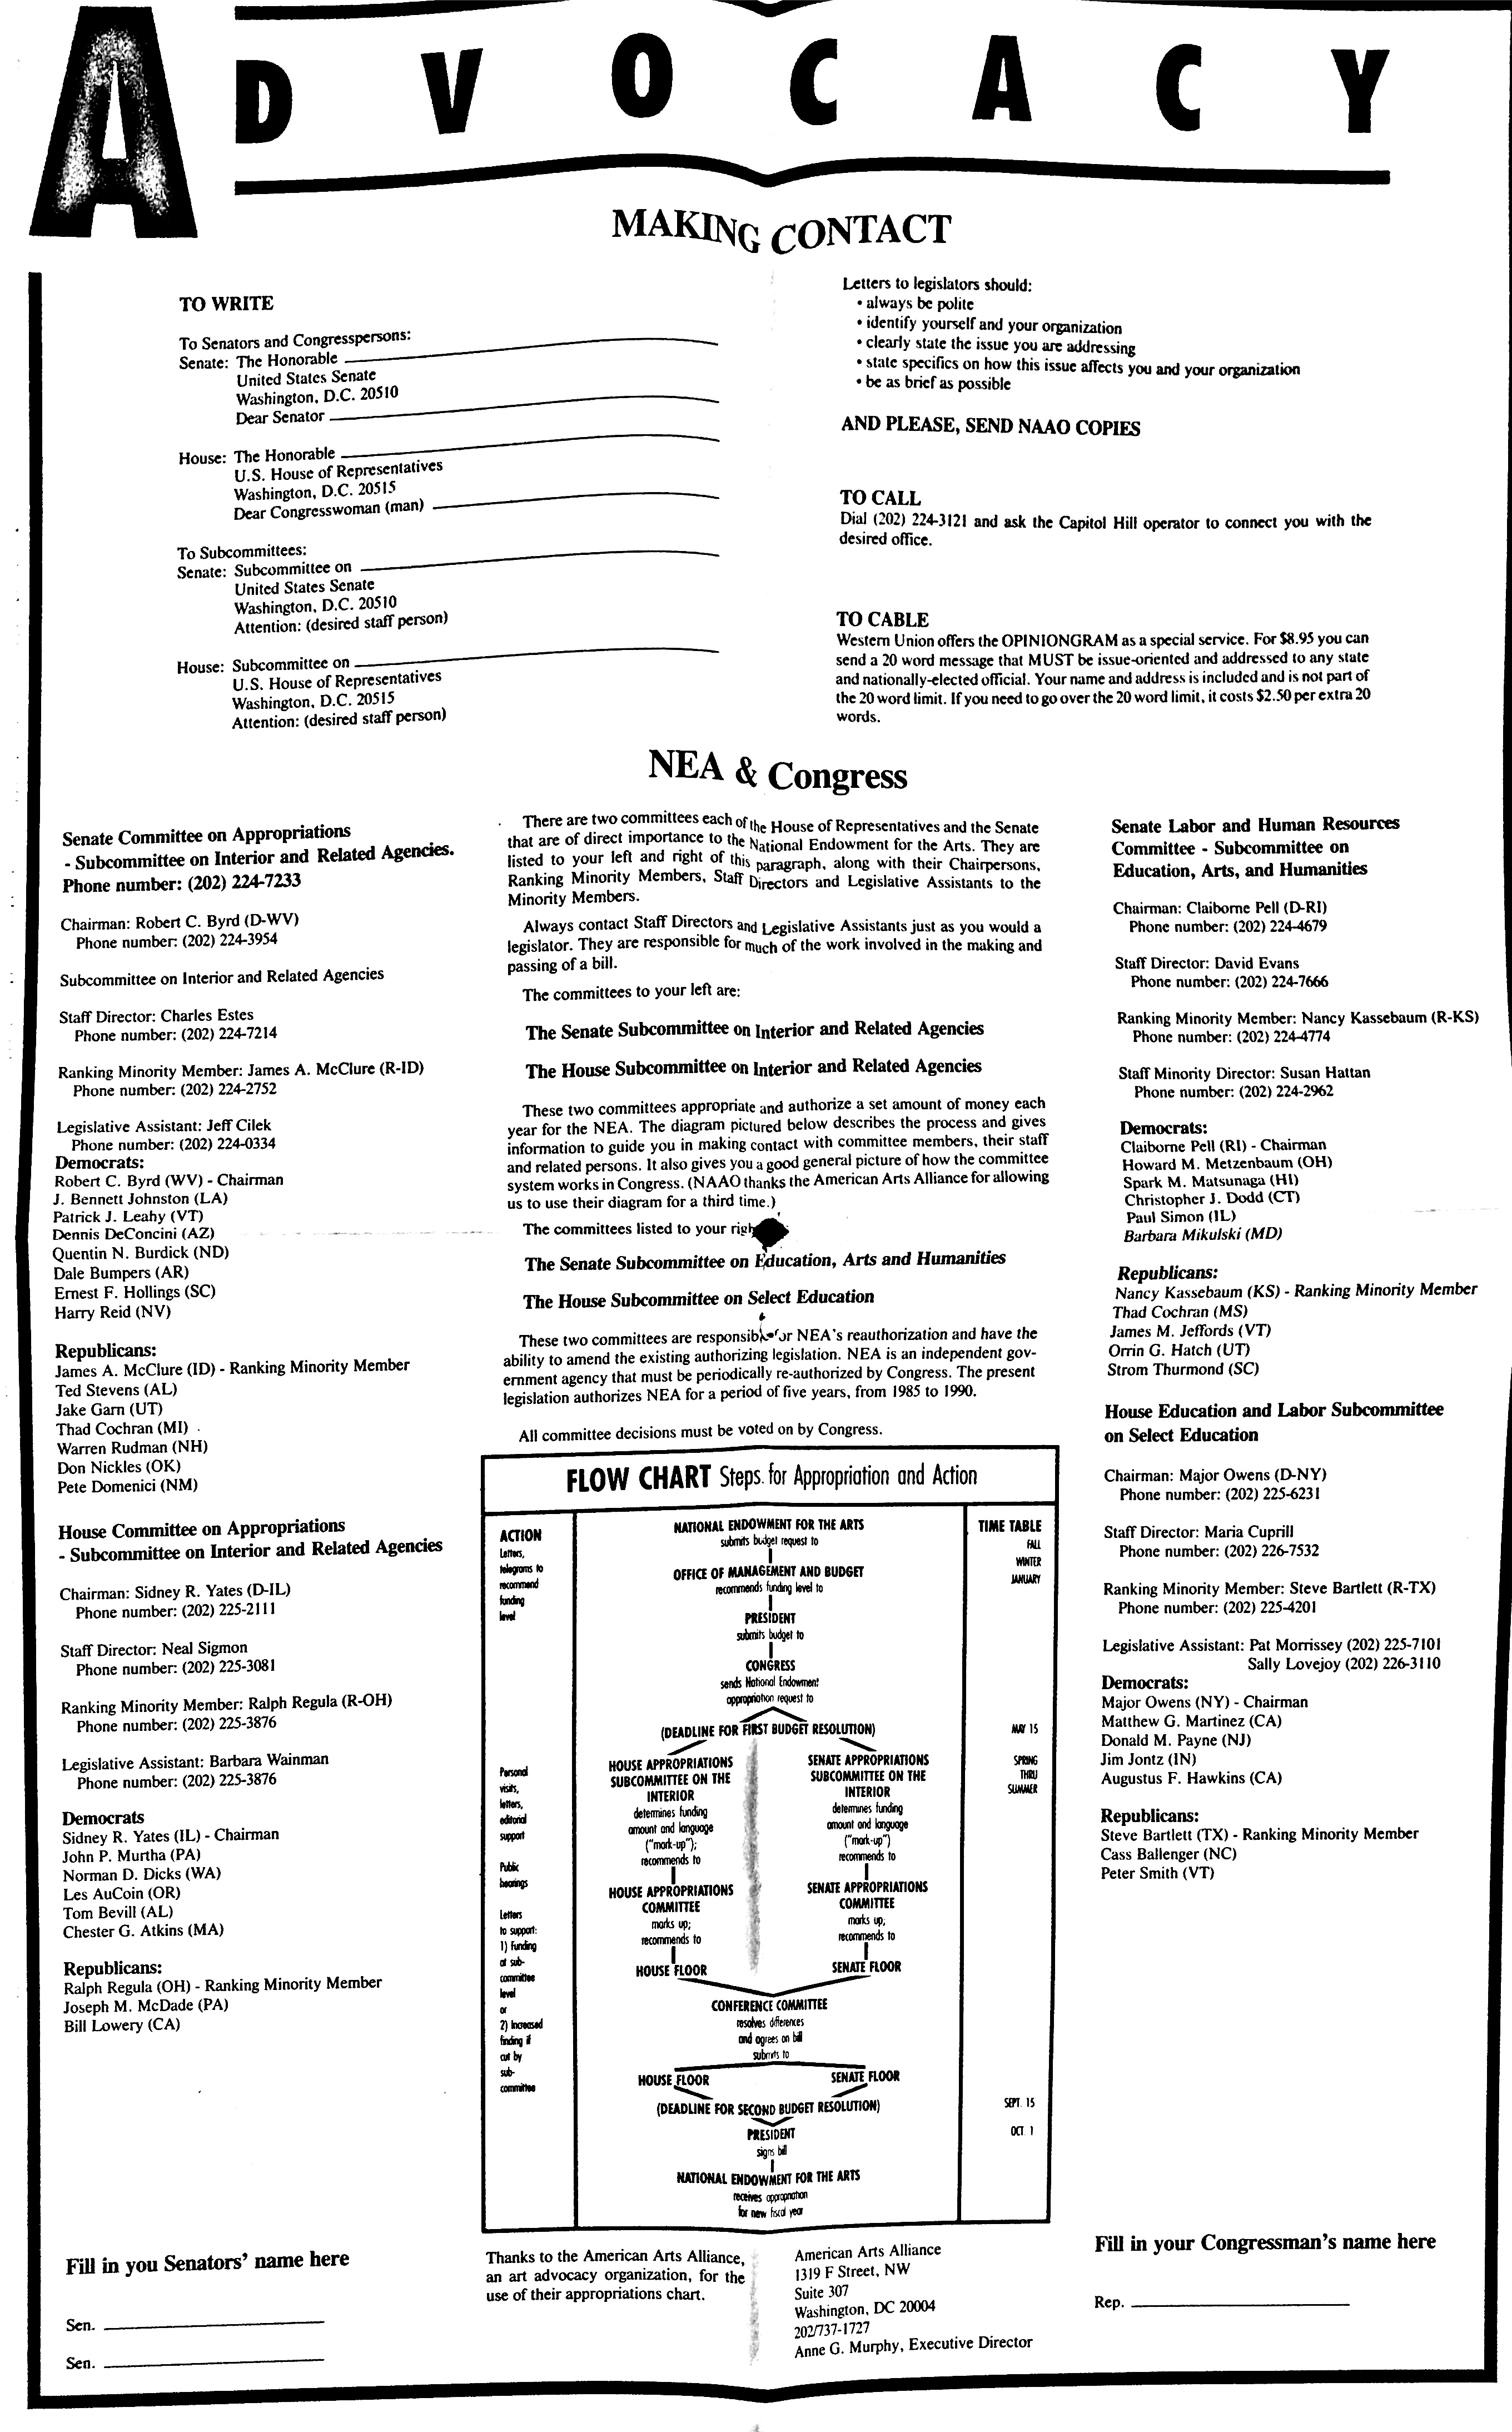 August 16, 1989 Page 5.jpg